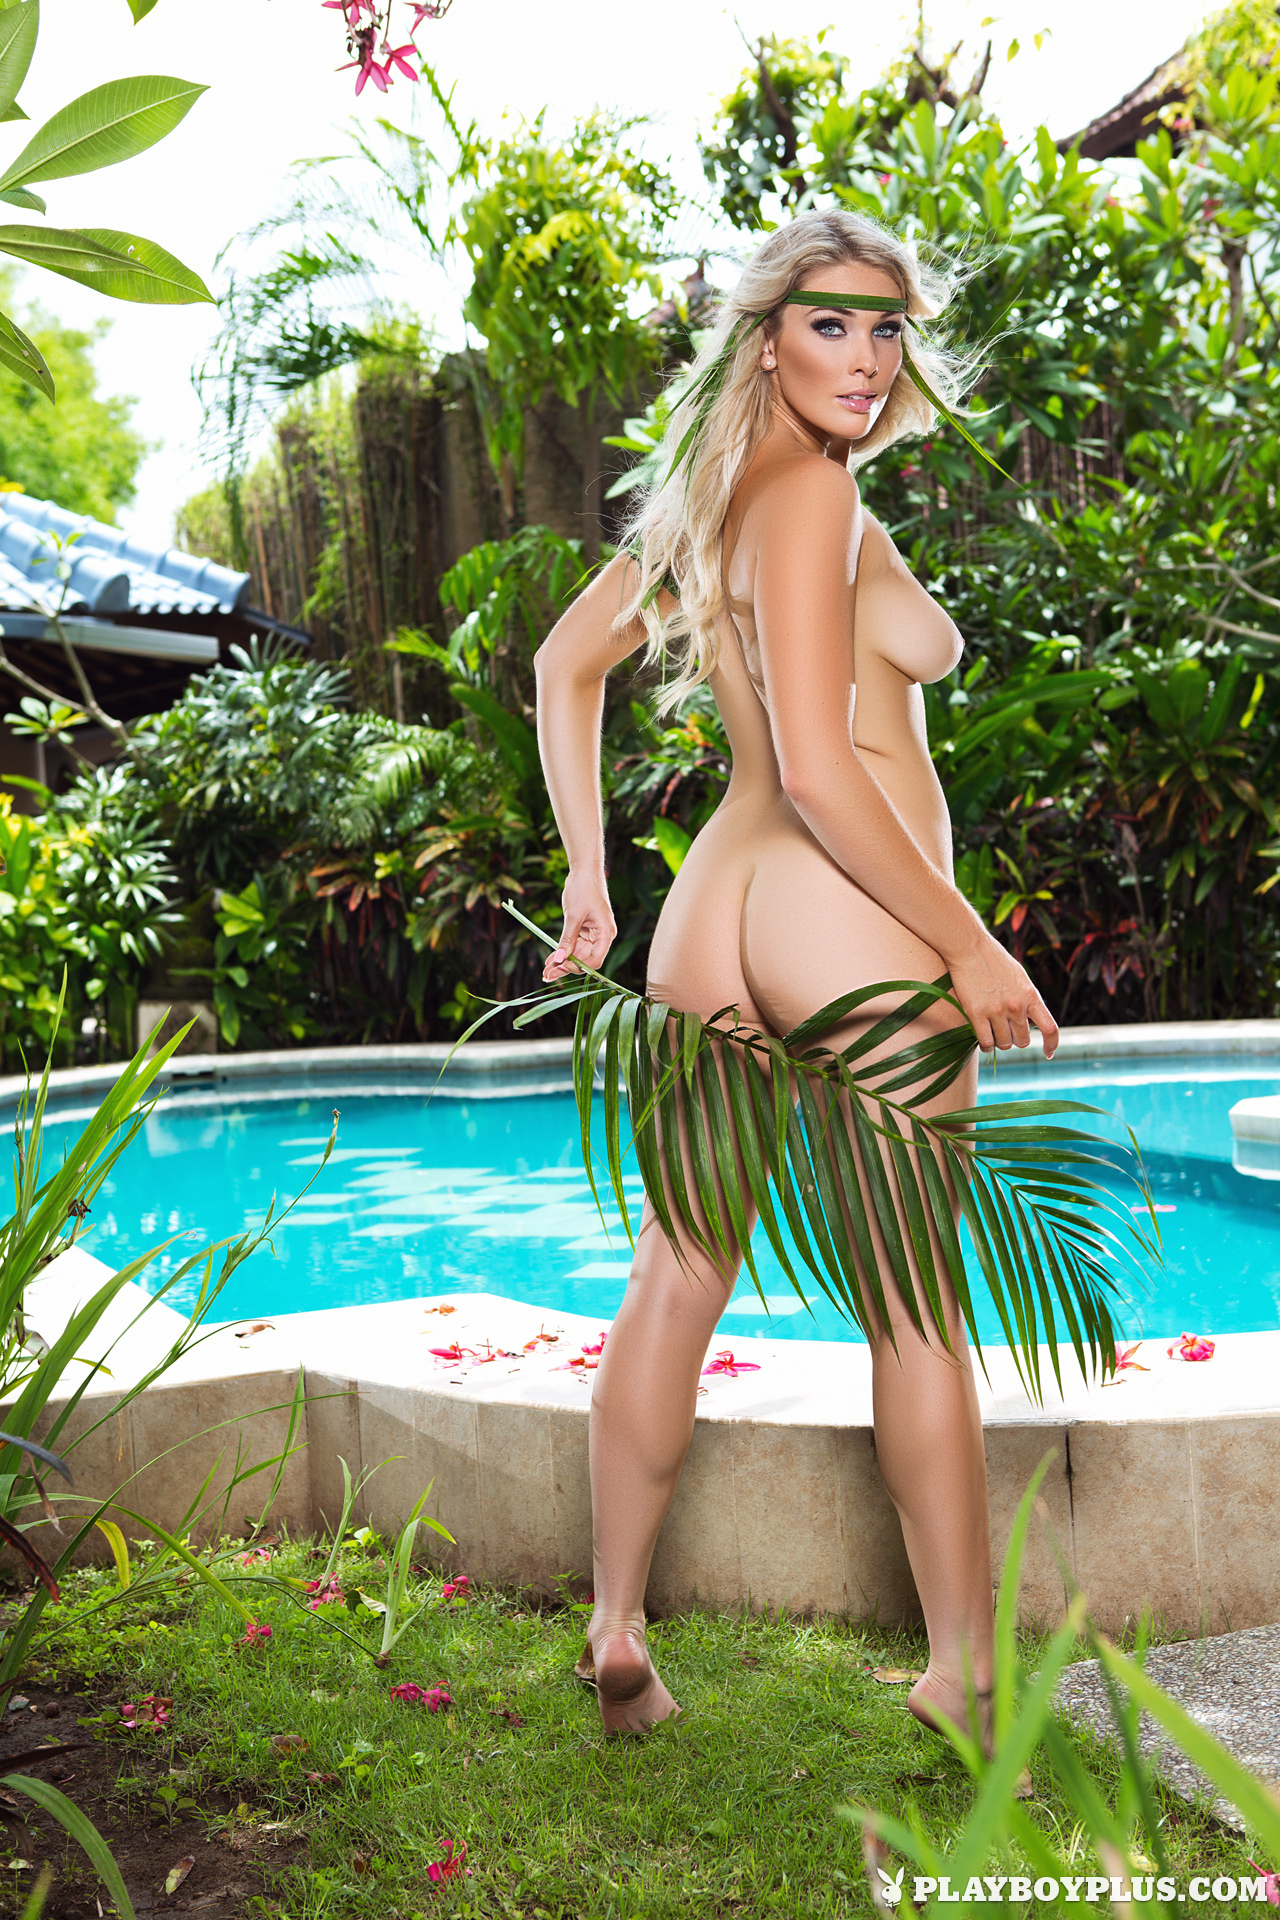 Rebekah Cotton in Skinny Dip - Centerfolds Blog